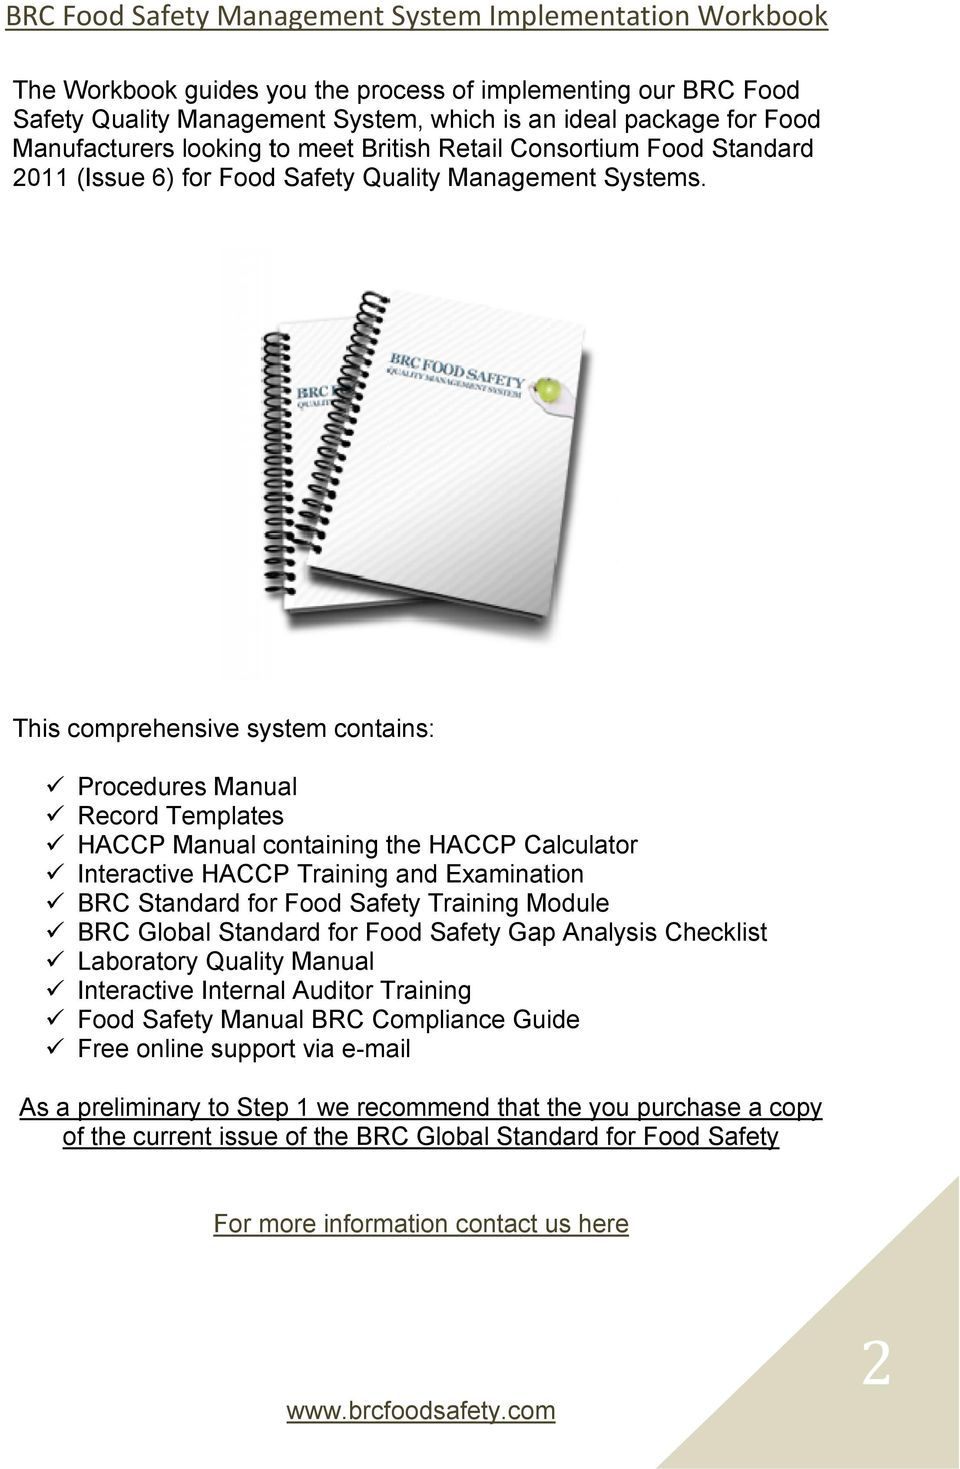 This comprehensive system contains: Procedures Manual Record Templates HACCP Manual containing the HACCP Calculator Interactive HACCP Training and Examination BRC Standard for Food Safety Training